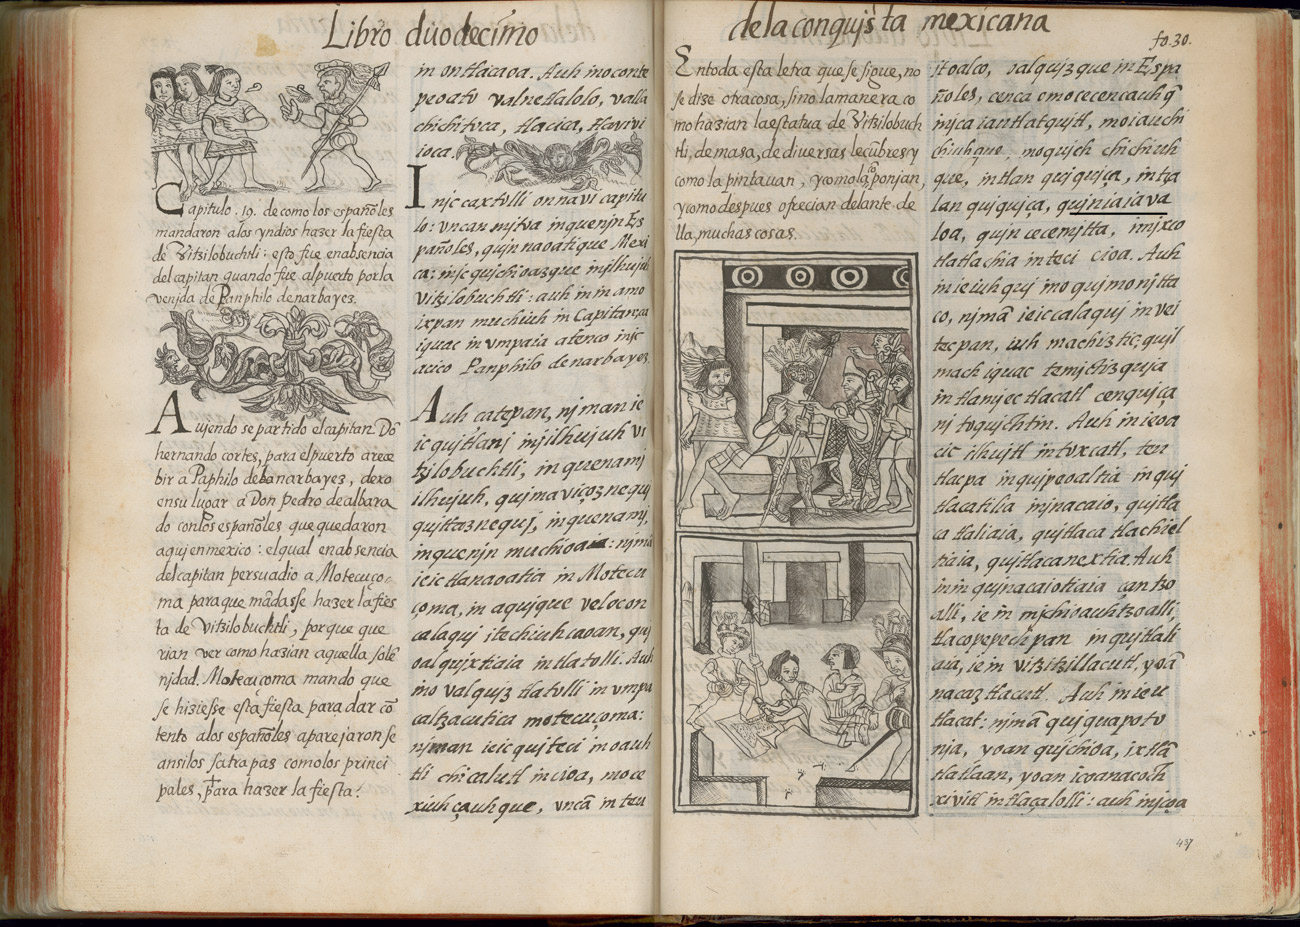 Book 12 from the Florentine Codex is opened to reveal two handwritten pages and some drawings. The drawings depict Spaniards ordering Mexicas to prepare the Toxcatl festival and female ritual practitioners preparing amaranth dough while Spanish soldiers observe their work.